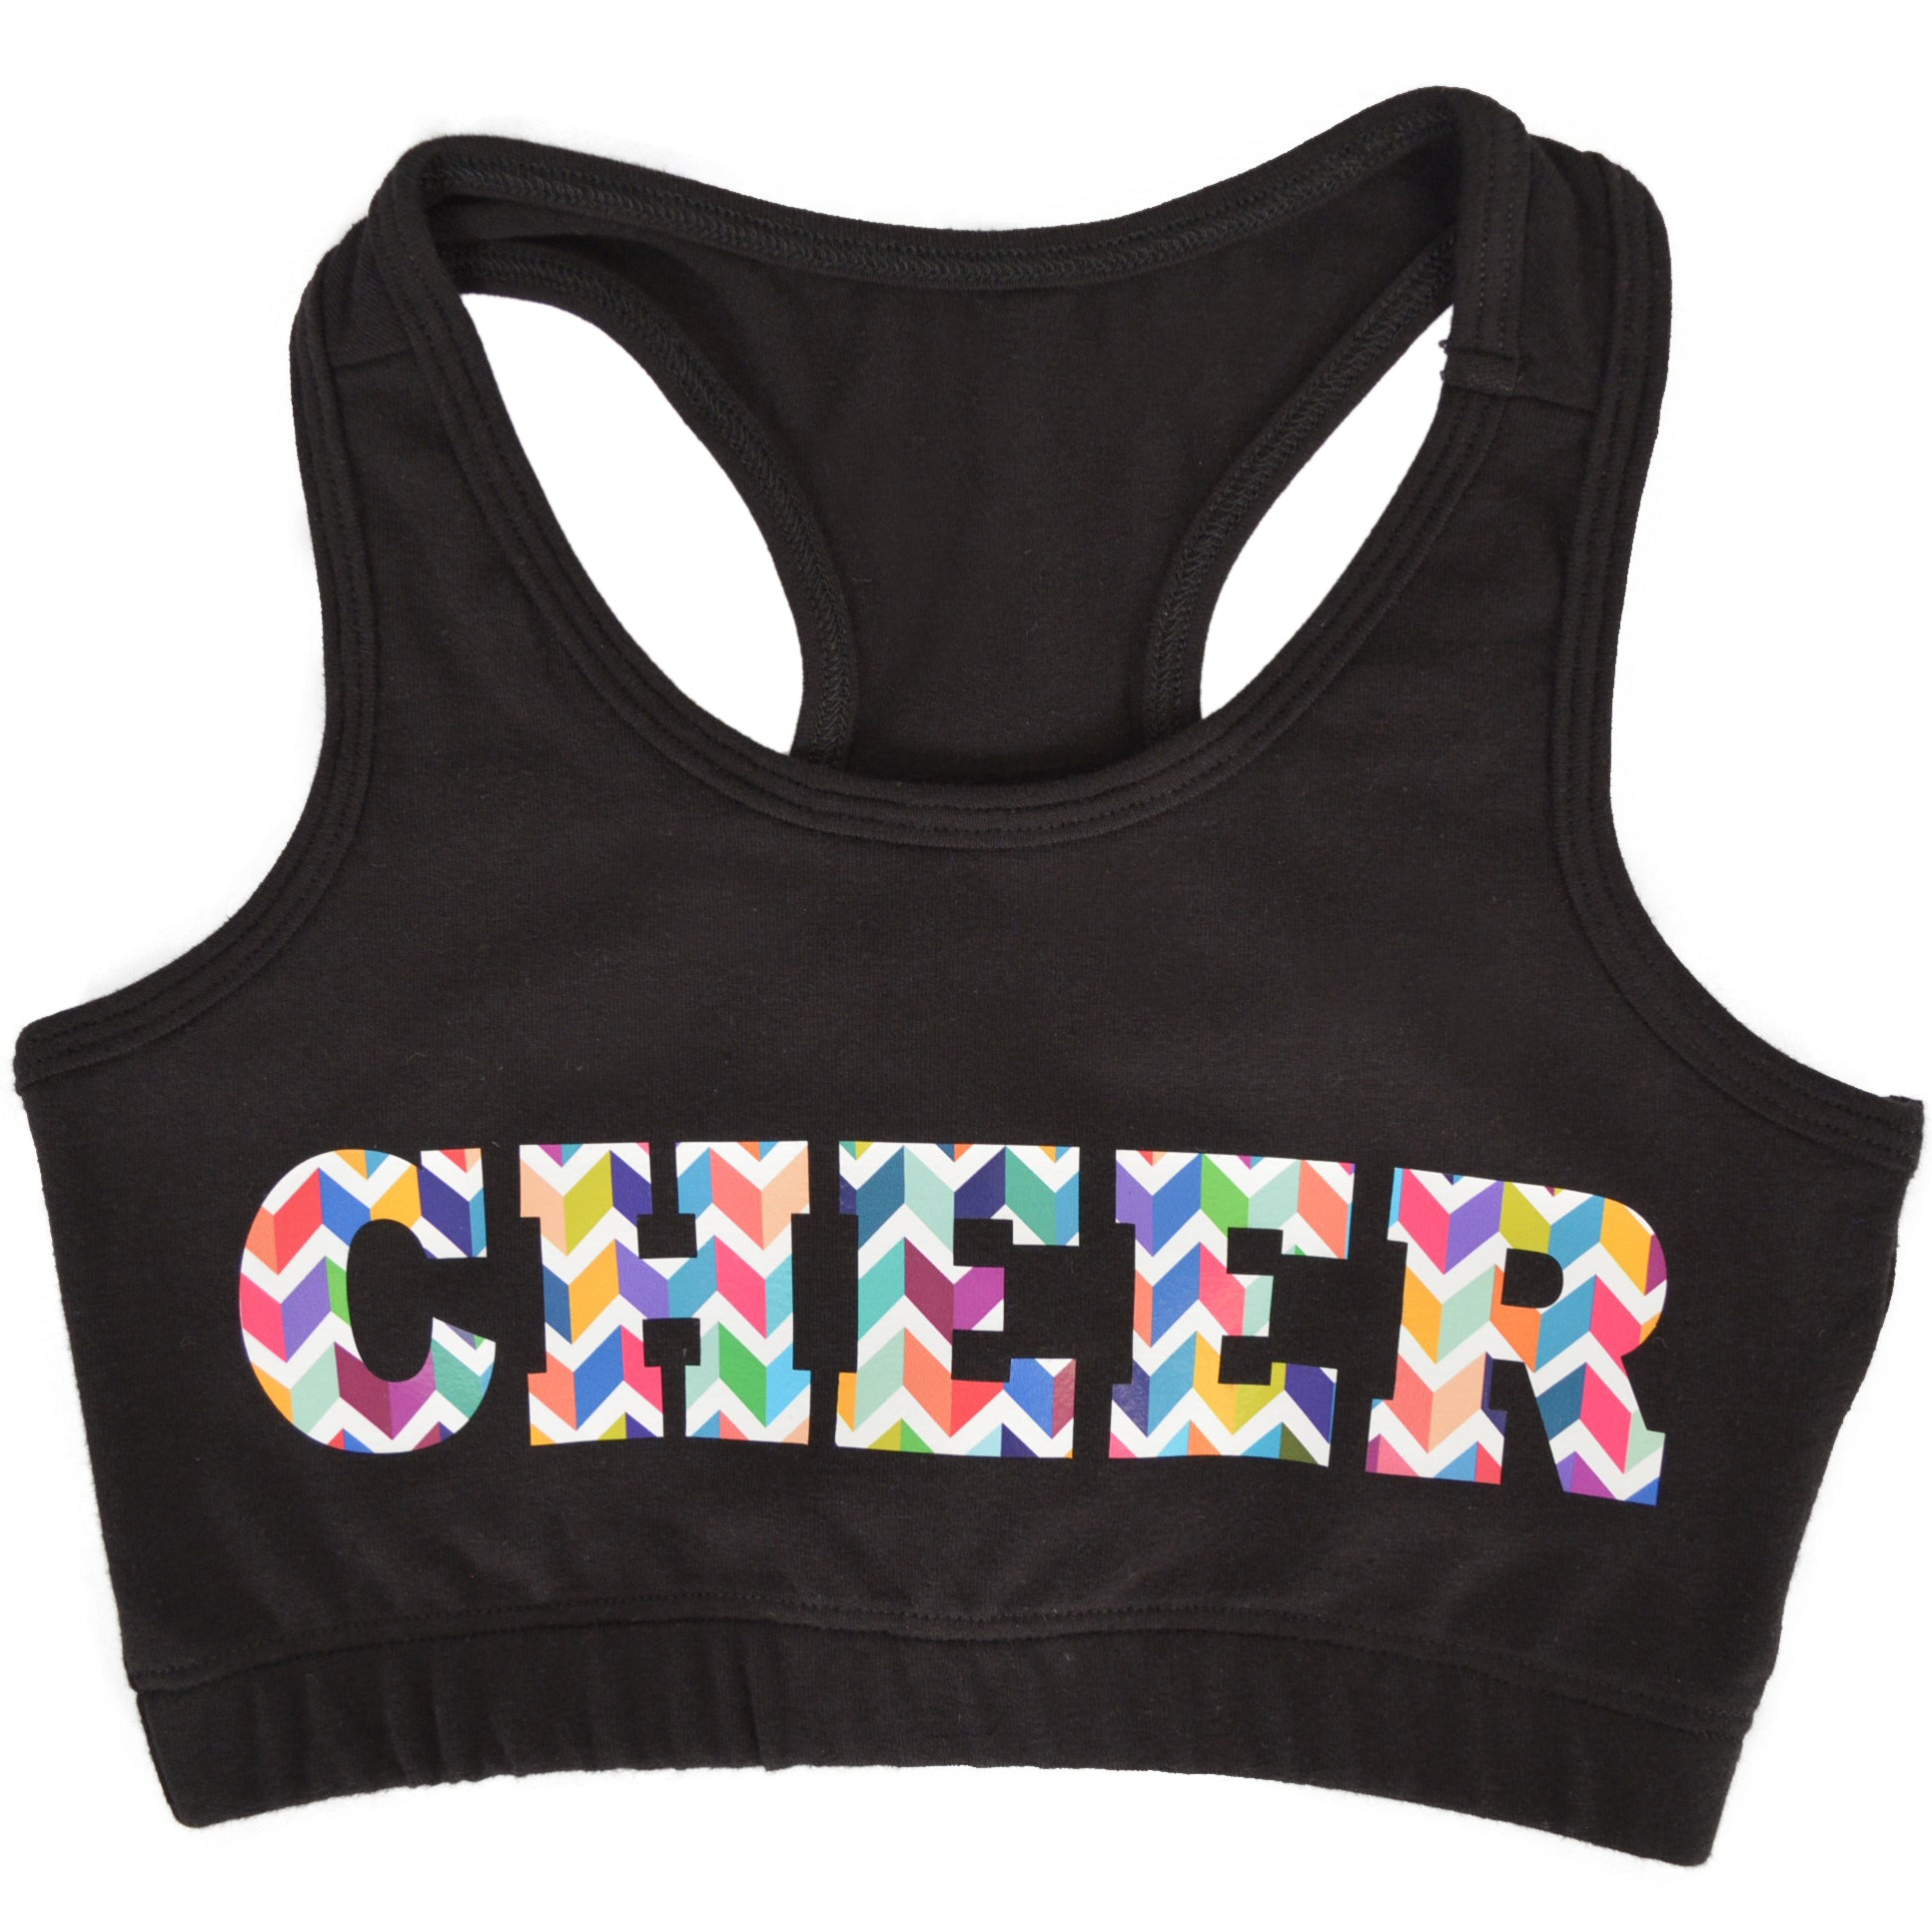 Girl's Racerback Sports Bra Cheer in Chevron